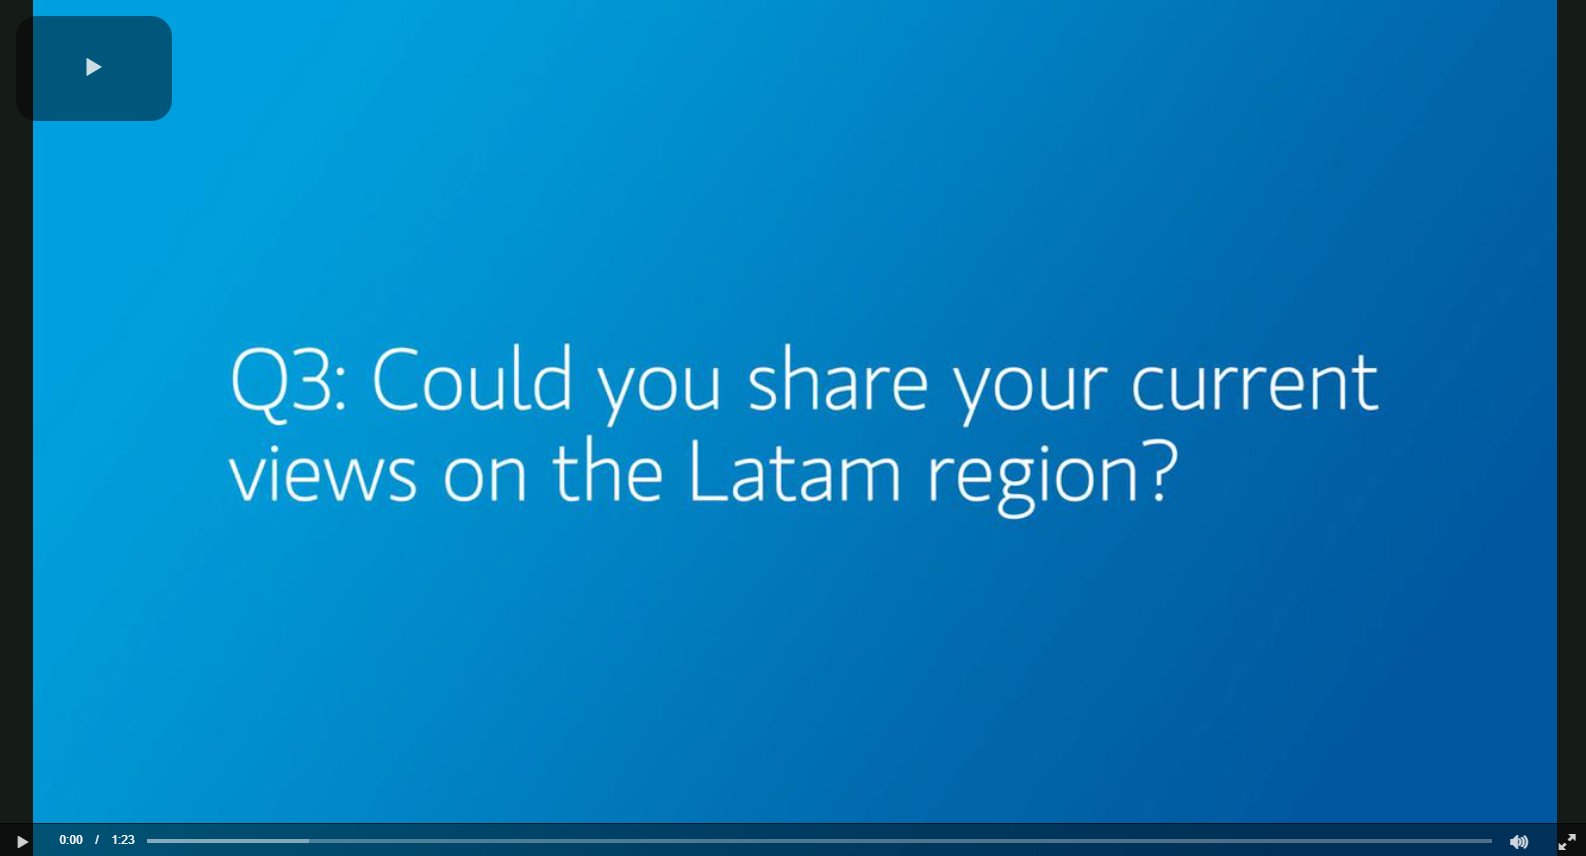 Q3:  Could you share your current views on the Latam region?